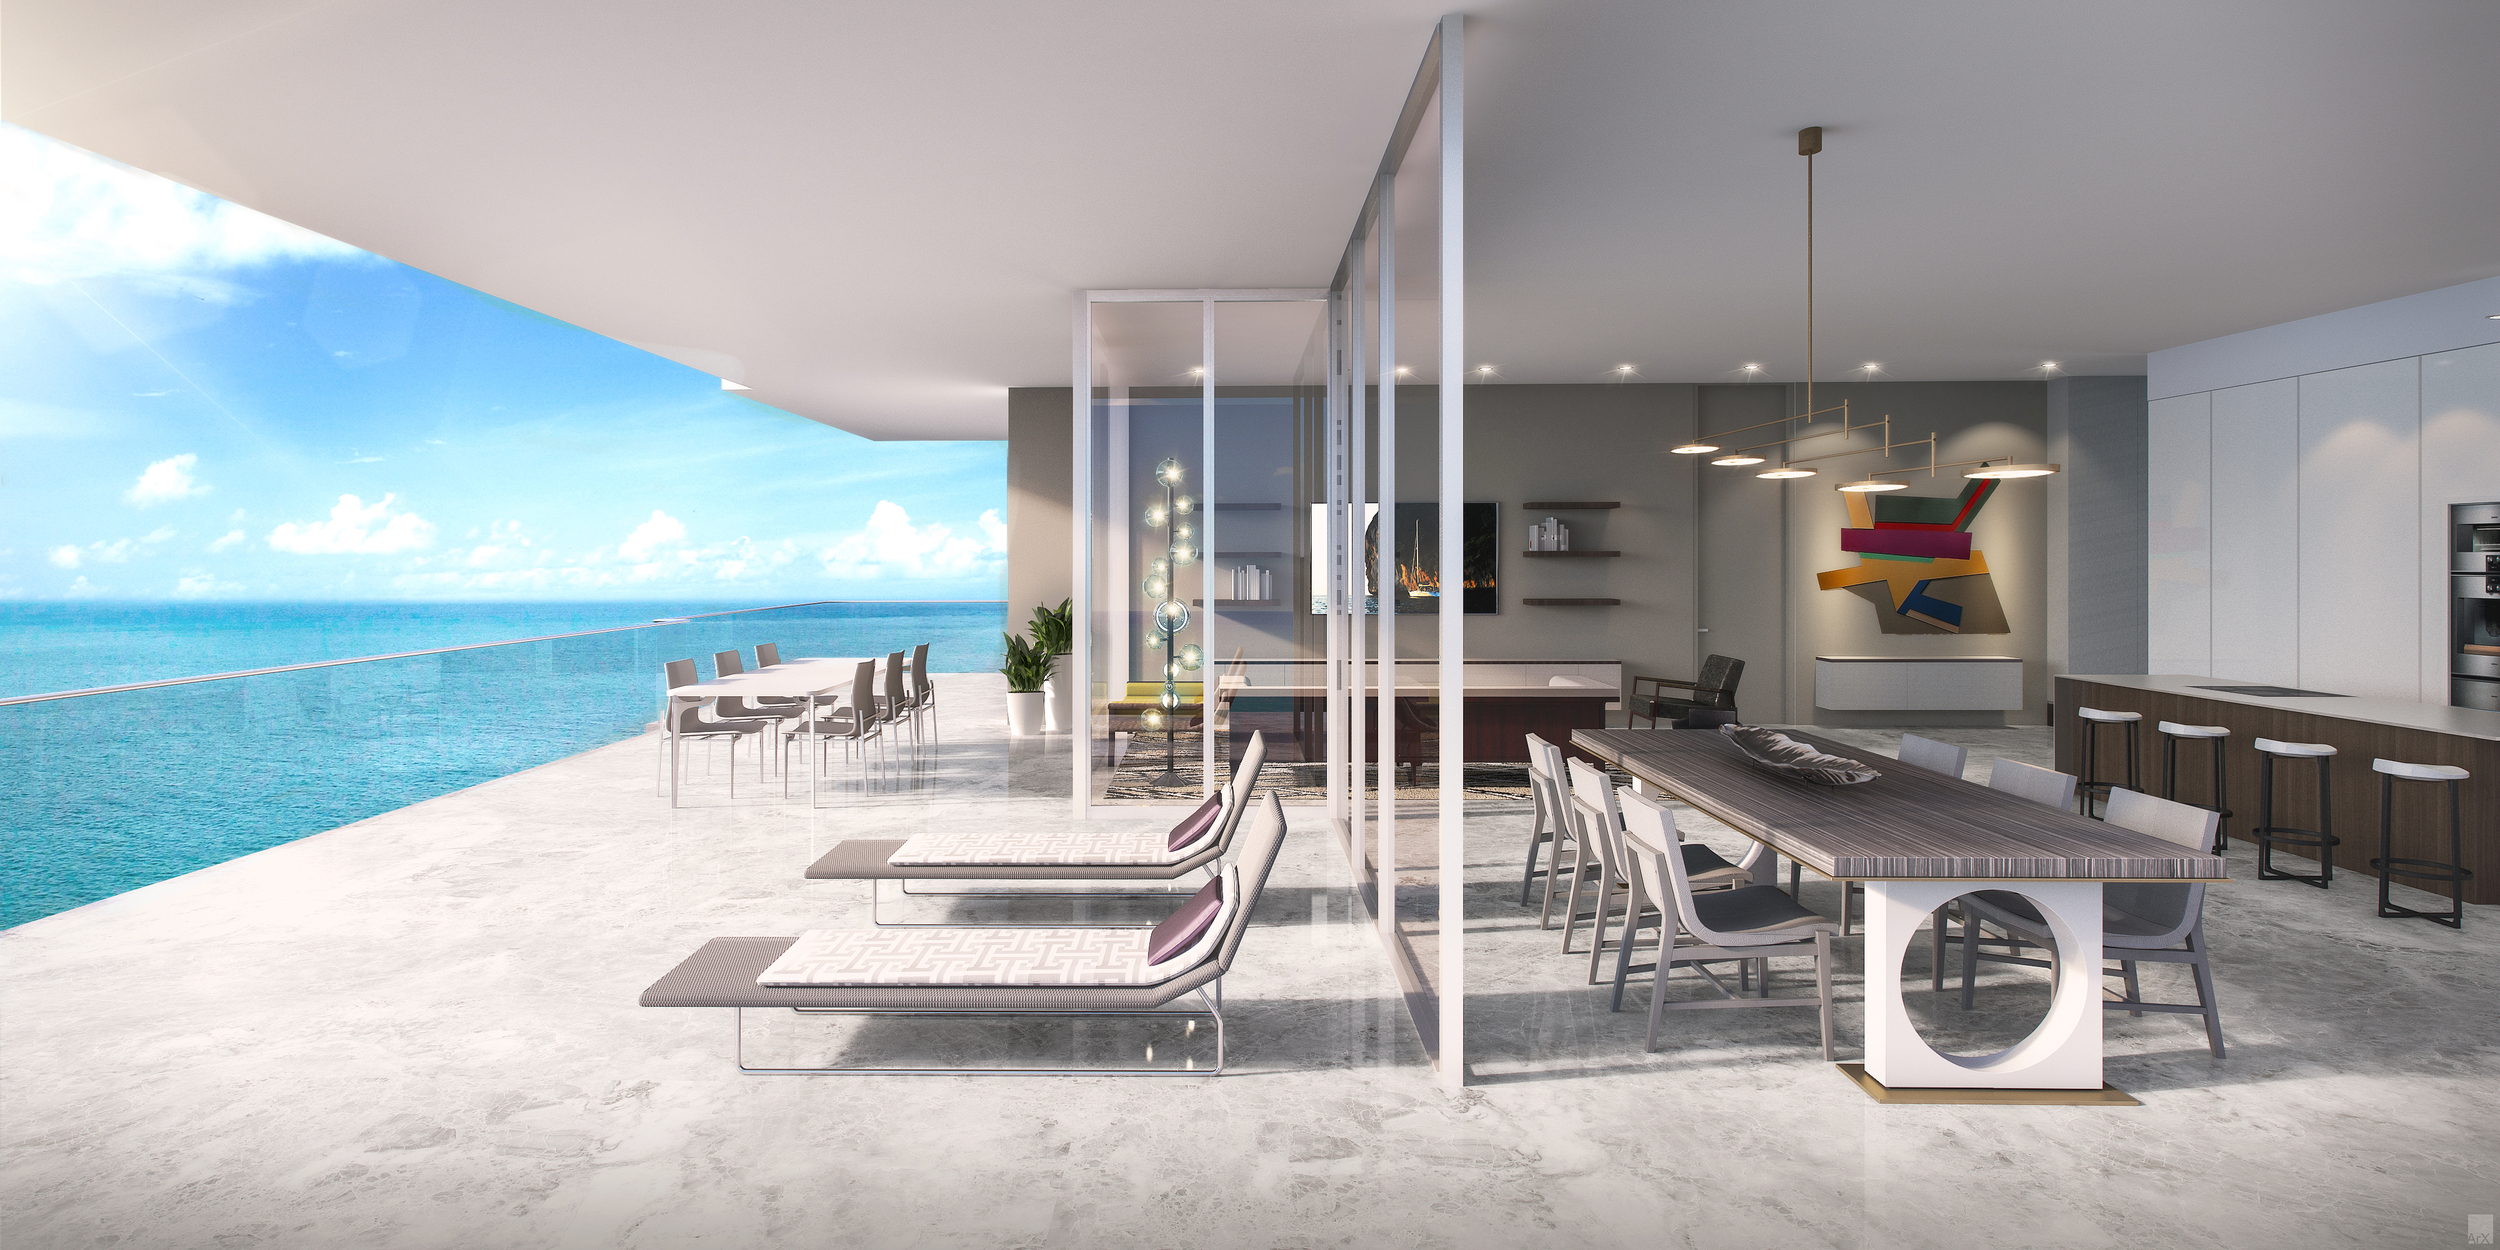 L'Atelier on Collins Avenue consists of 23 residences, including half-floor units with up to 1,171 square feet of exterior space. Courtesy of L'Atelier Residences